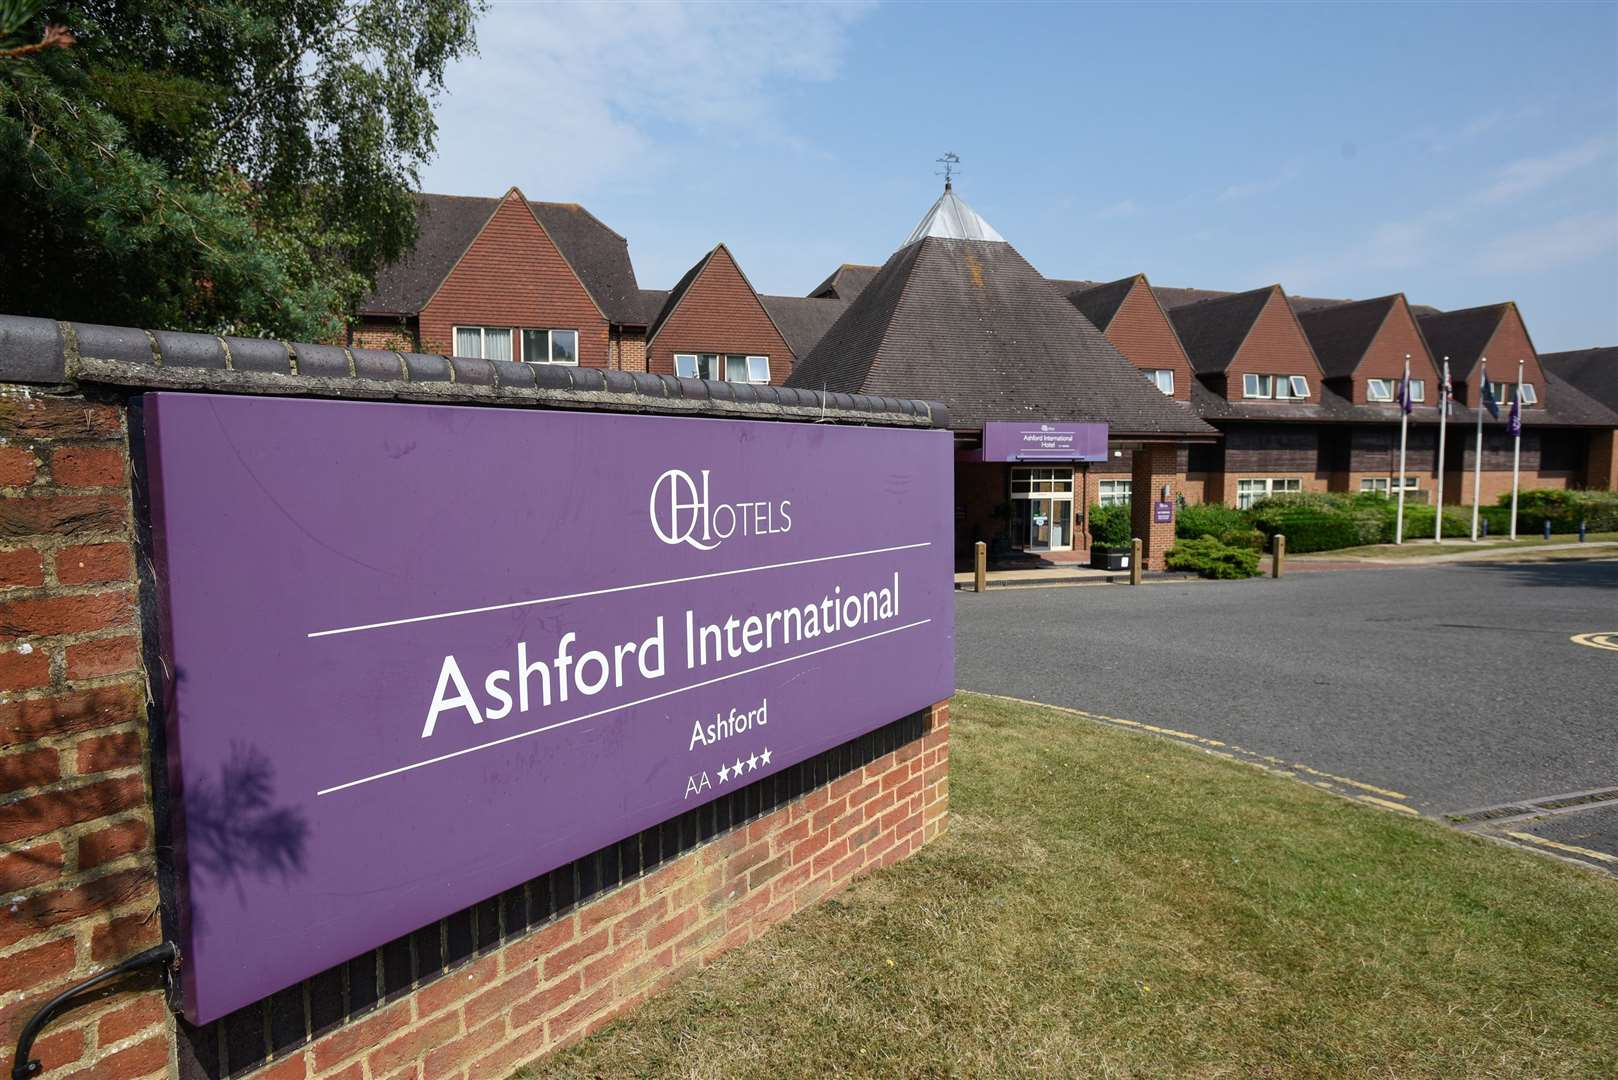 Ashford International Hotel hosted the event